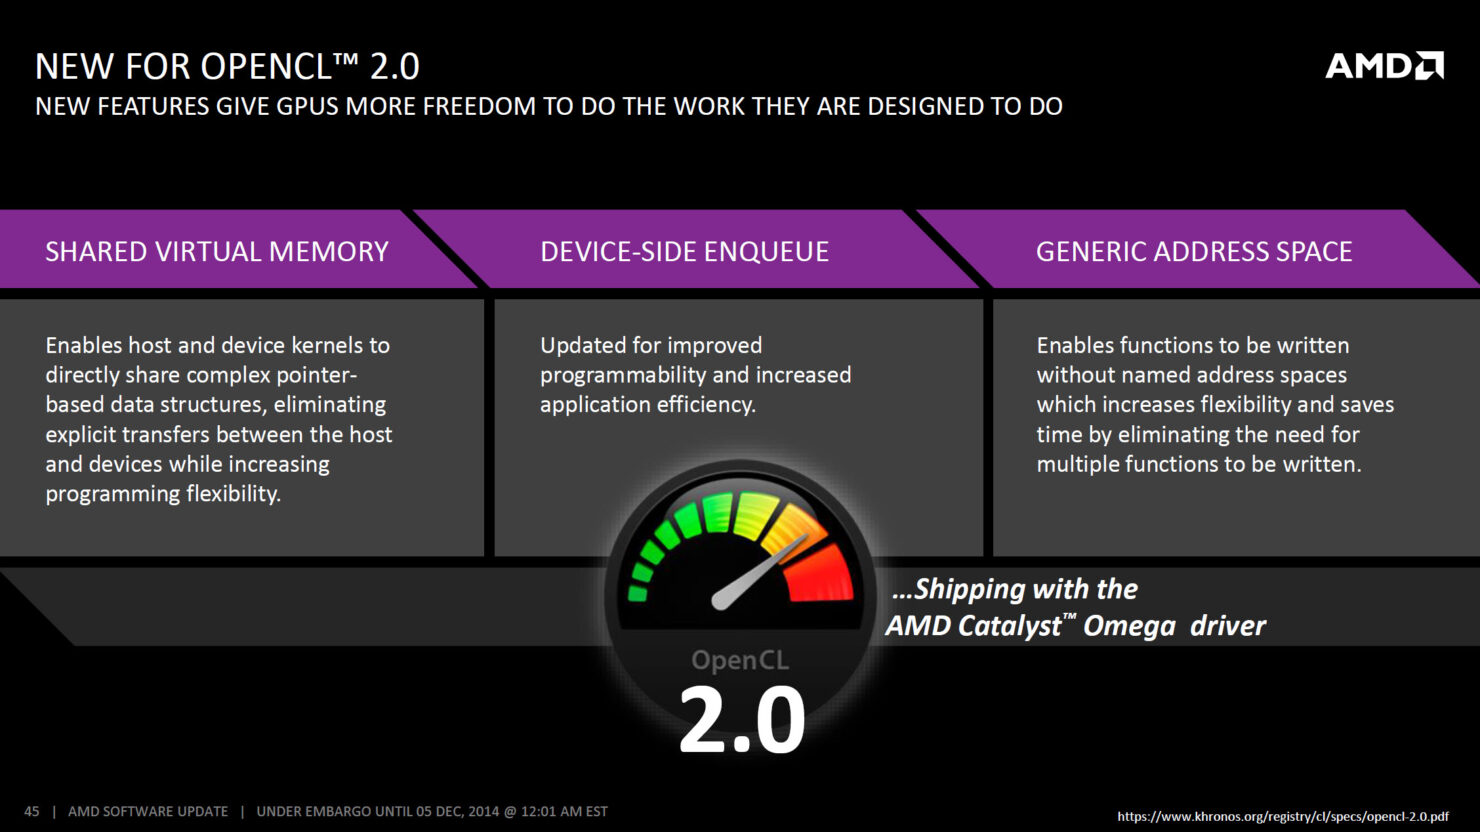 amd-catalyst-omega-driver-14-50_new-opencl-2-0